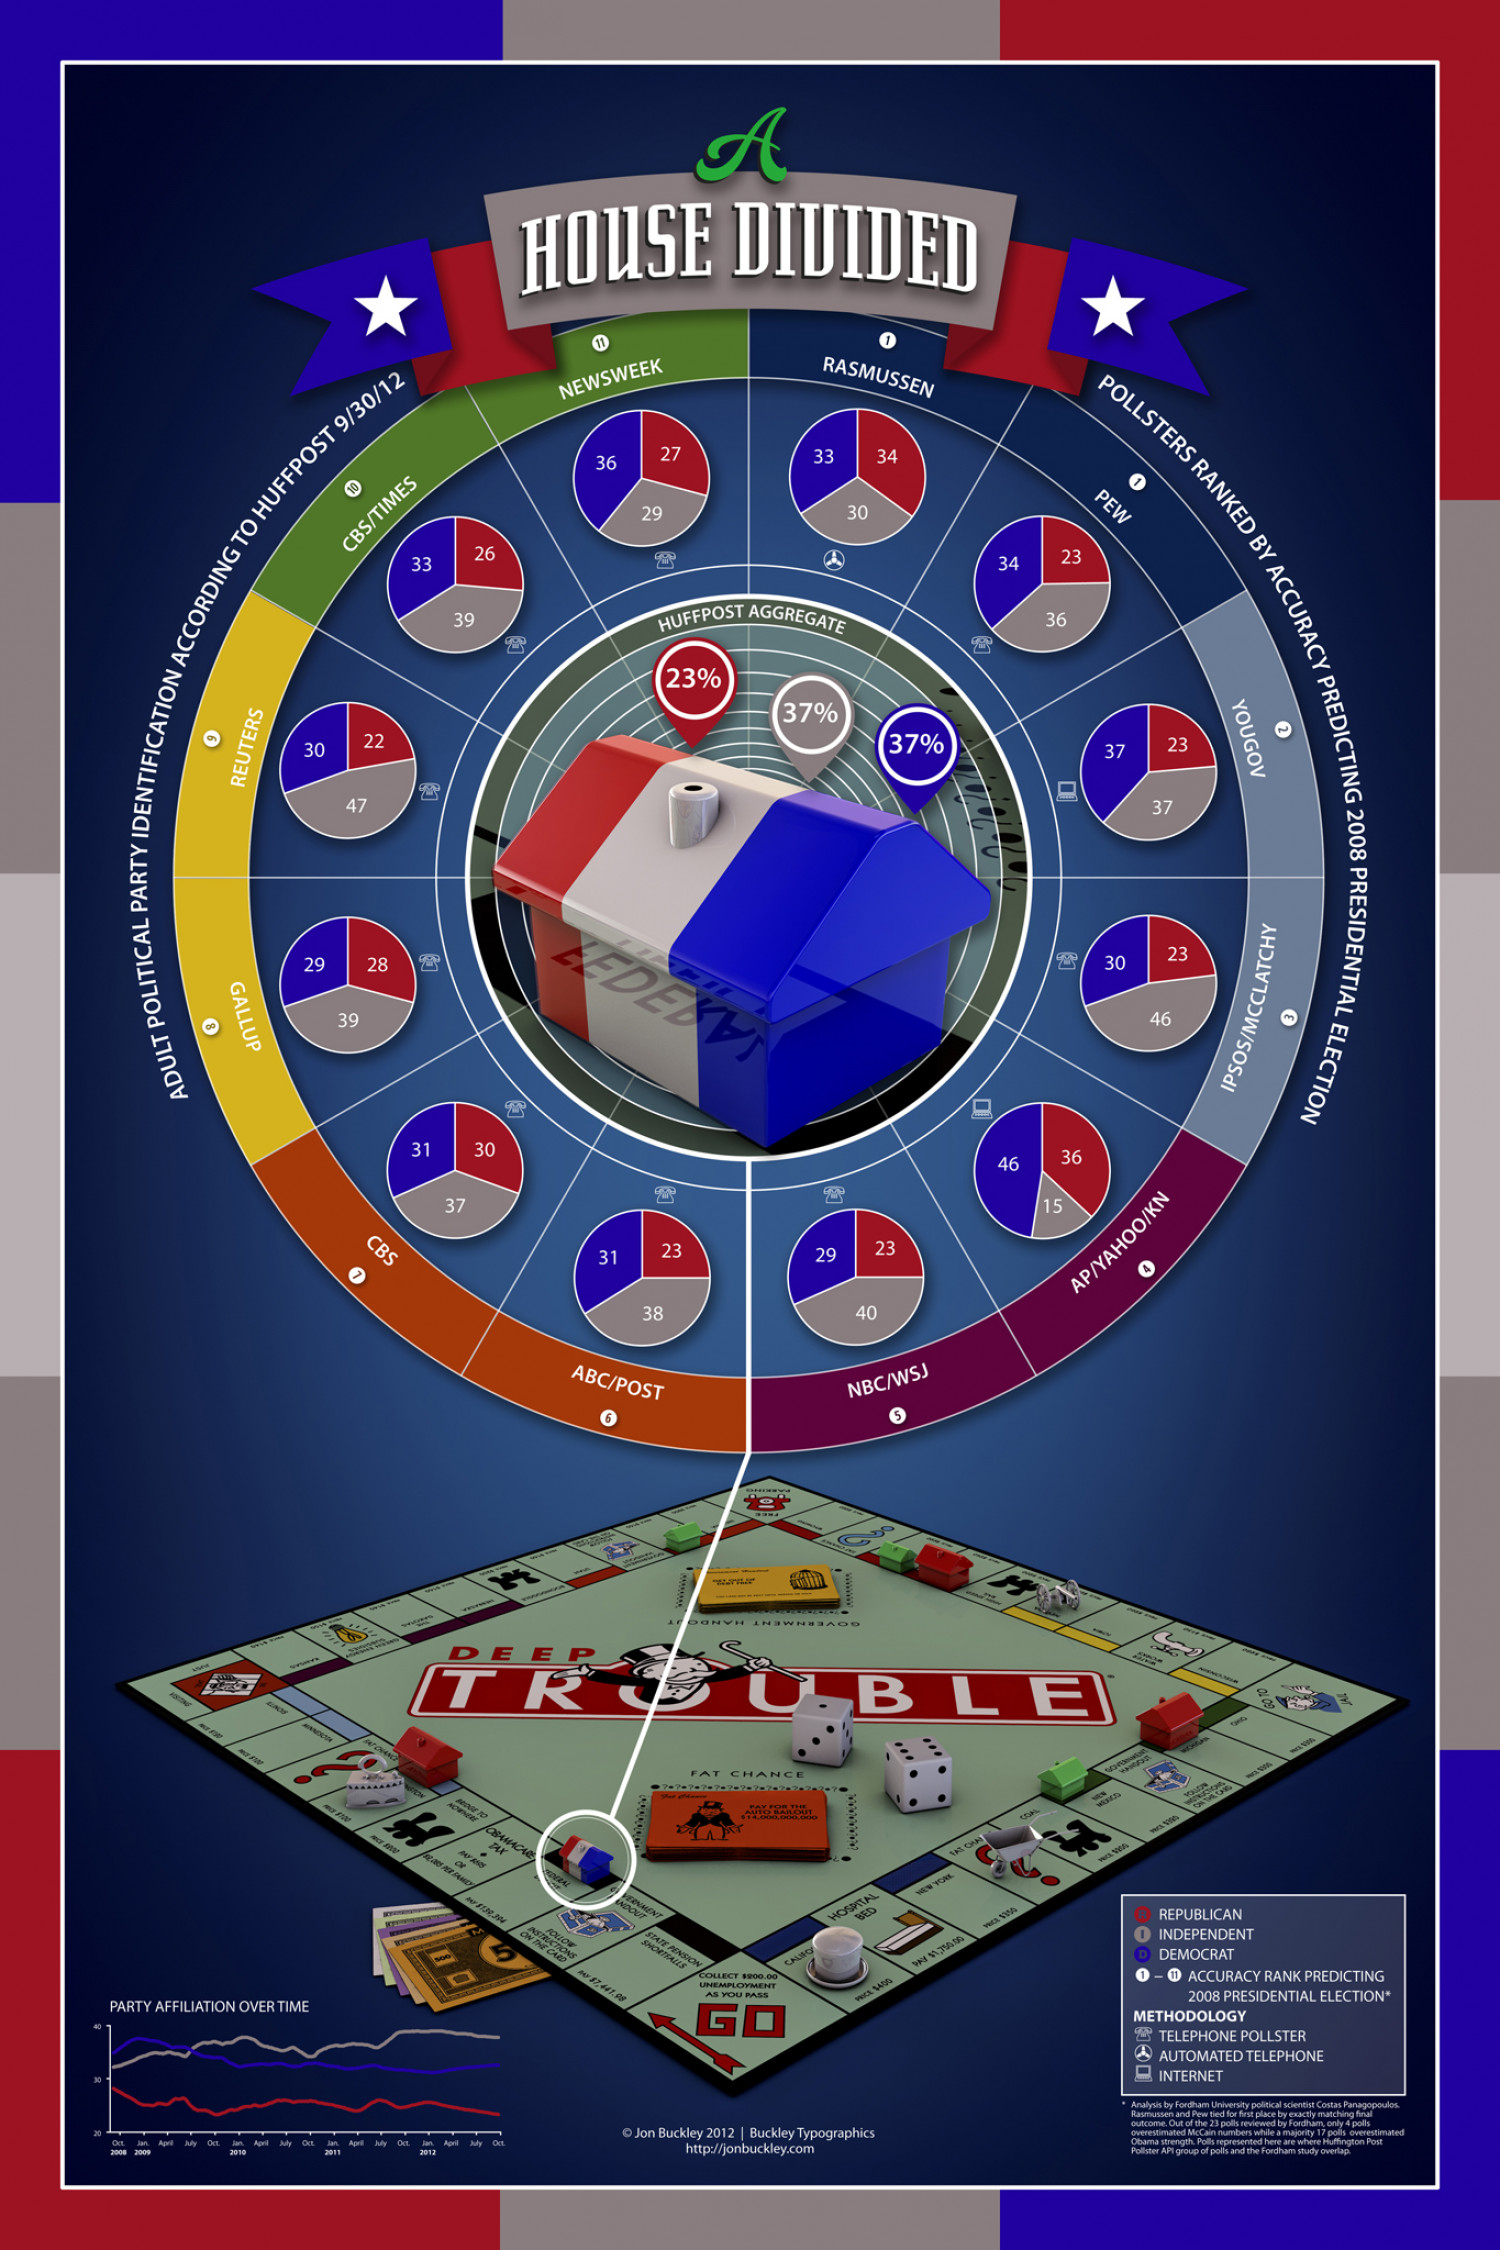 A House Divided Infographic